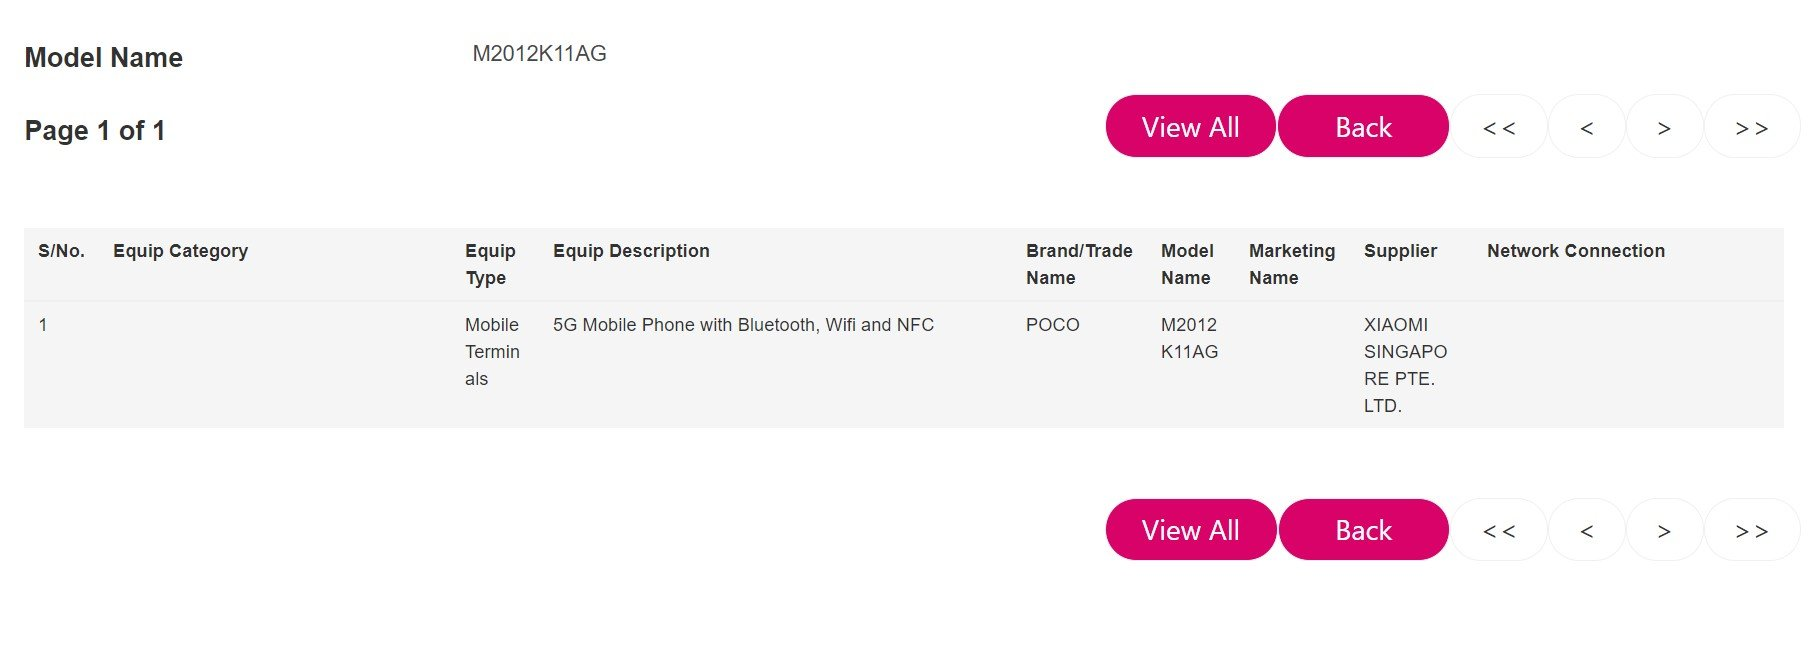 rumors-suggest-redmi-k40-series-launching-as-poco-f2-f3-for-the-global-market